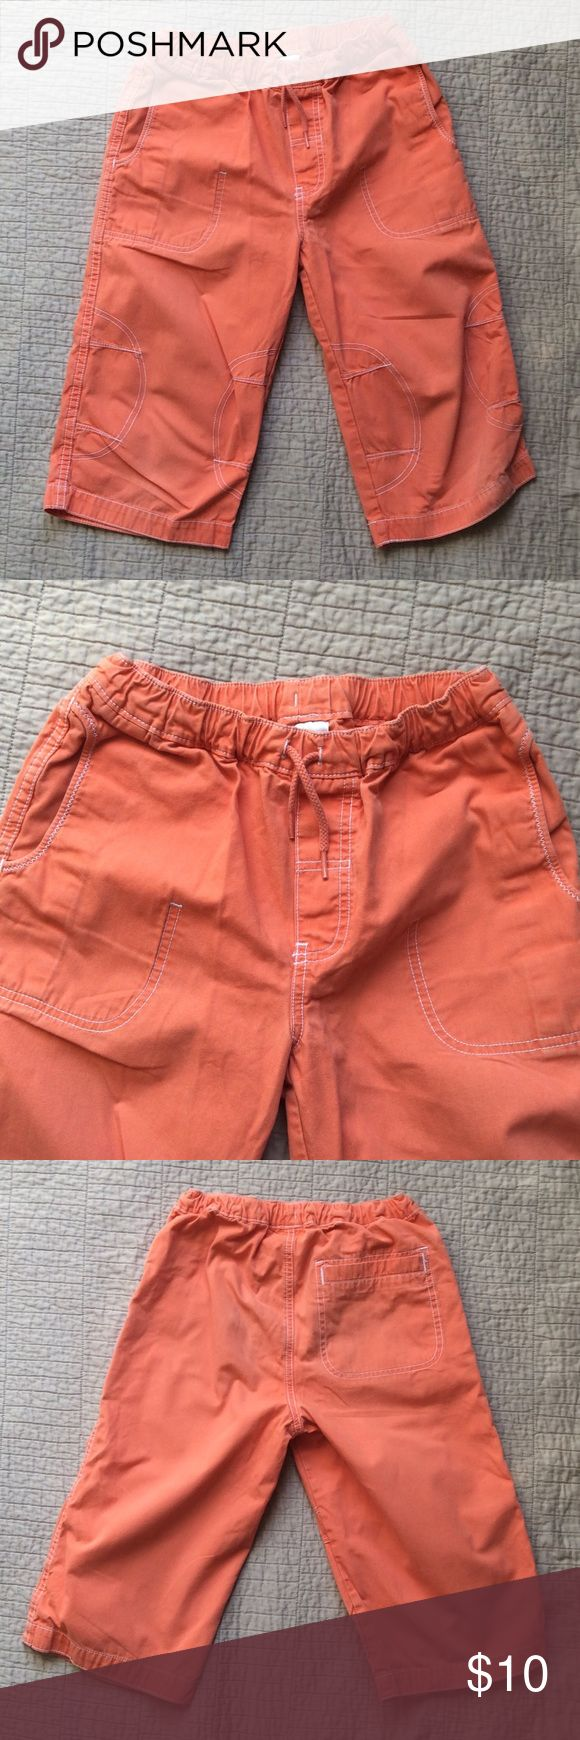 Hans Andersson classic Great cotton pants, size 140 (10-12), with drawstring waist! Hanna Andersson Bottoms